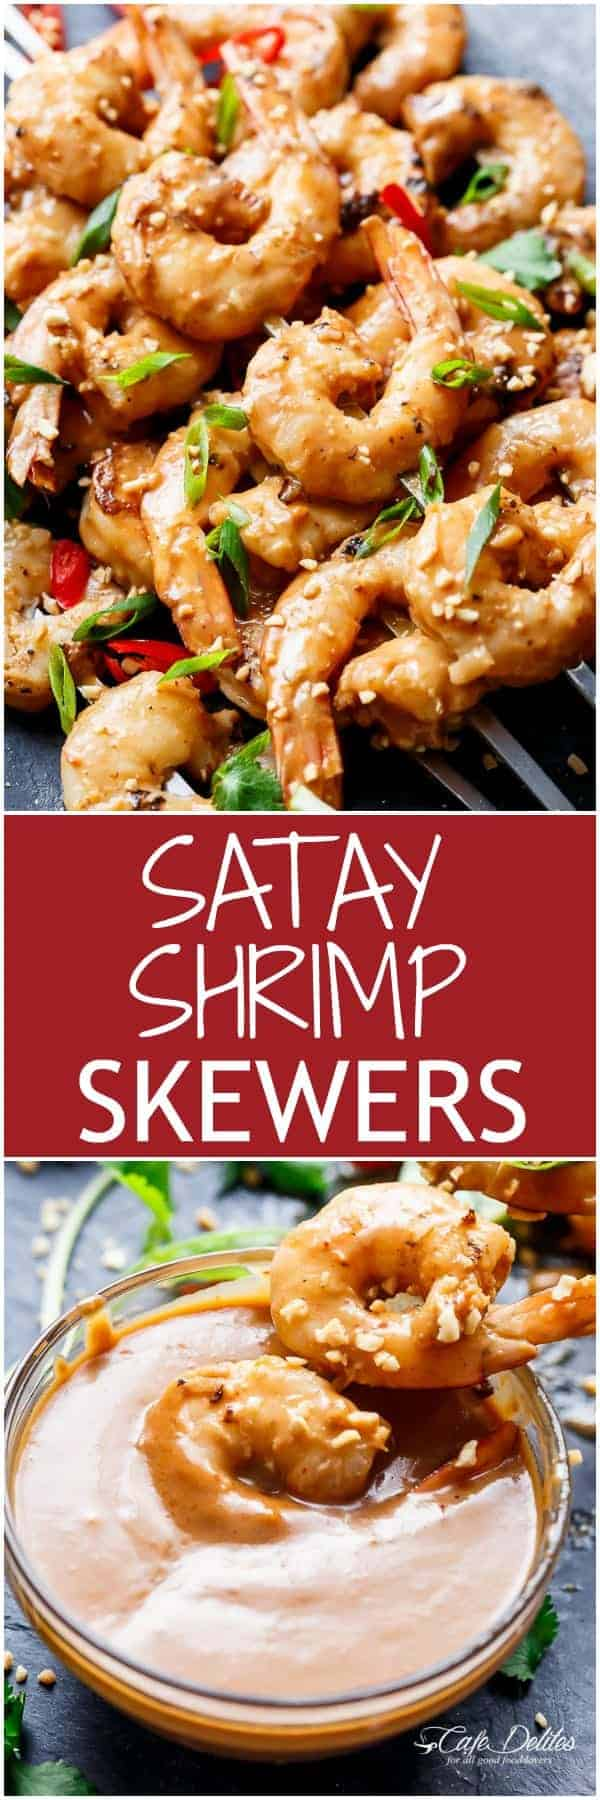 Easy grilled Satay Shrimp Skewers smothered in the BEST 10 minute Thai-style peanut sauce with minimal effort and maximum taste! | https://cafedelites.com